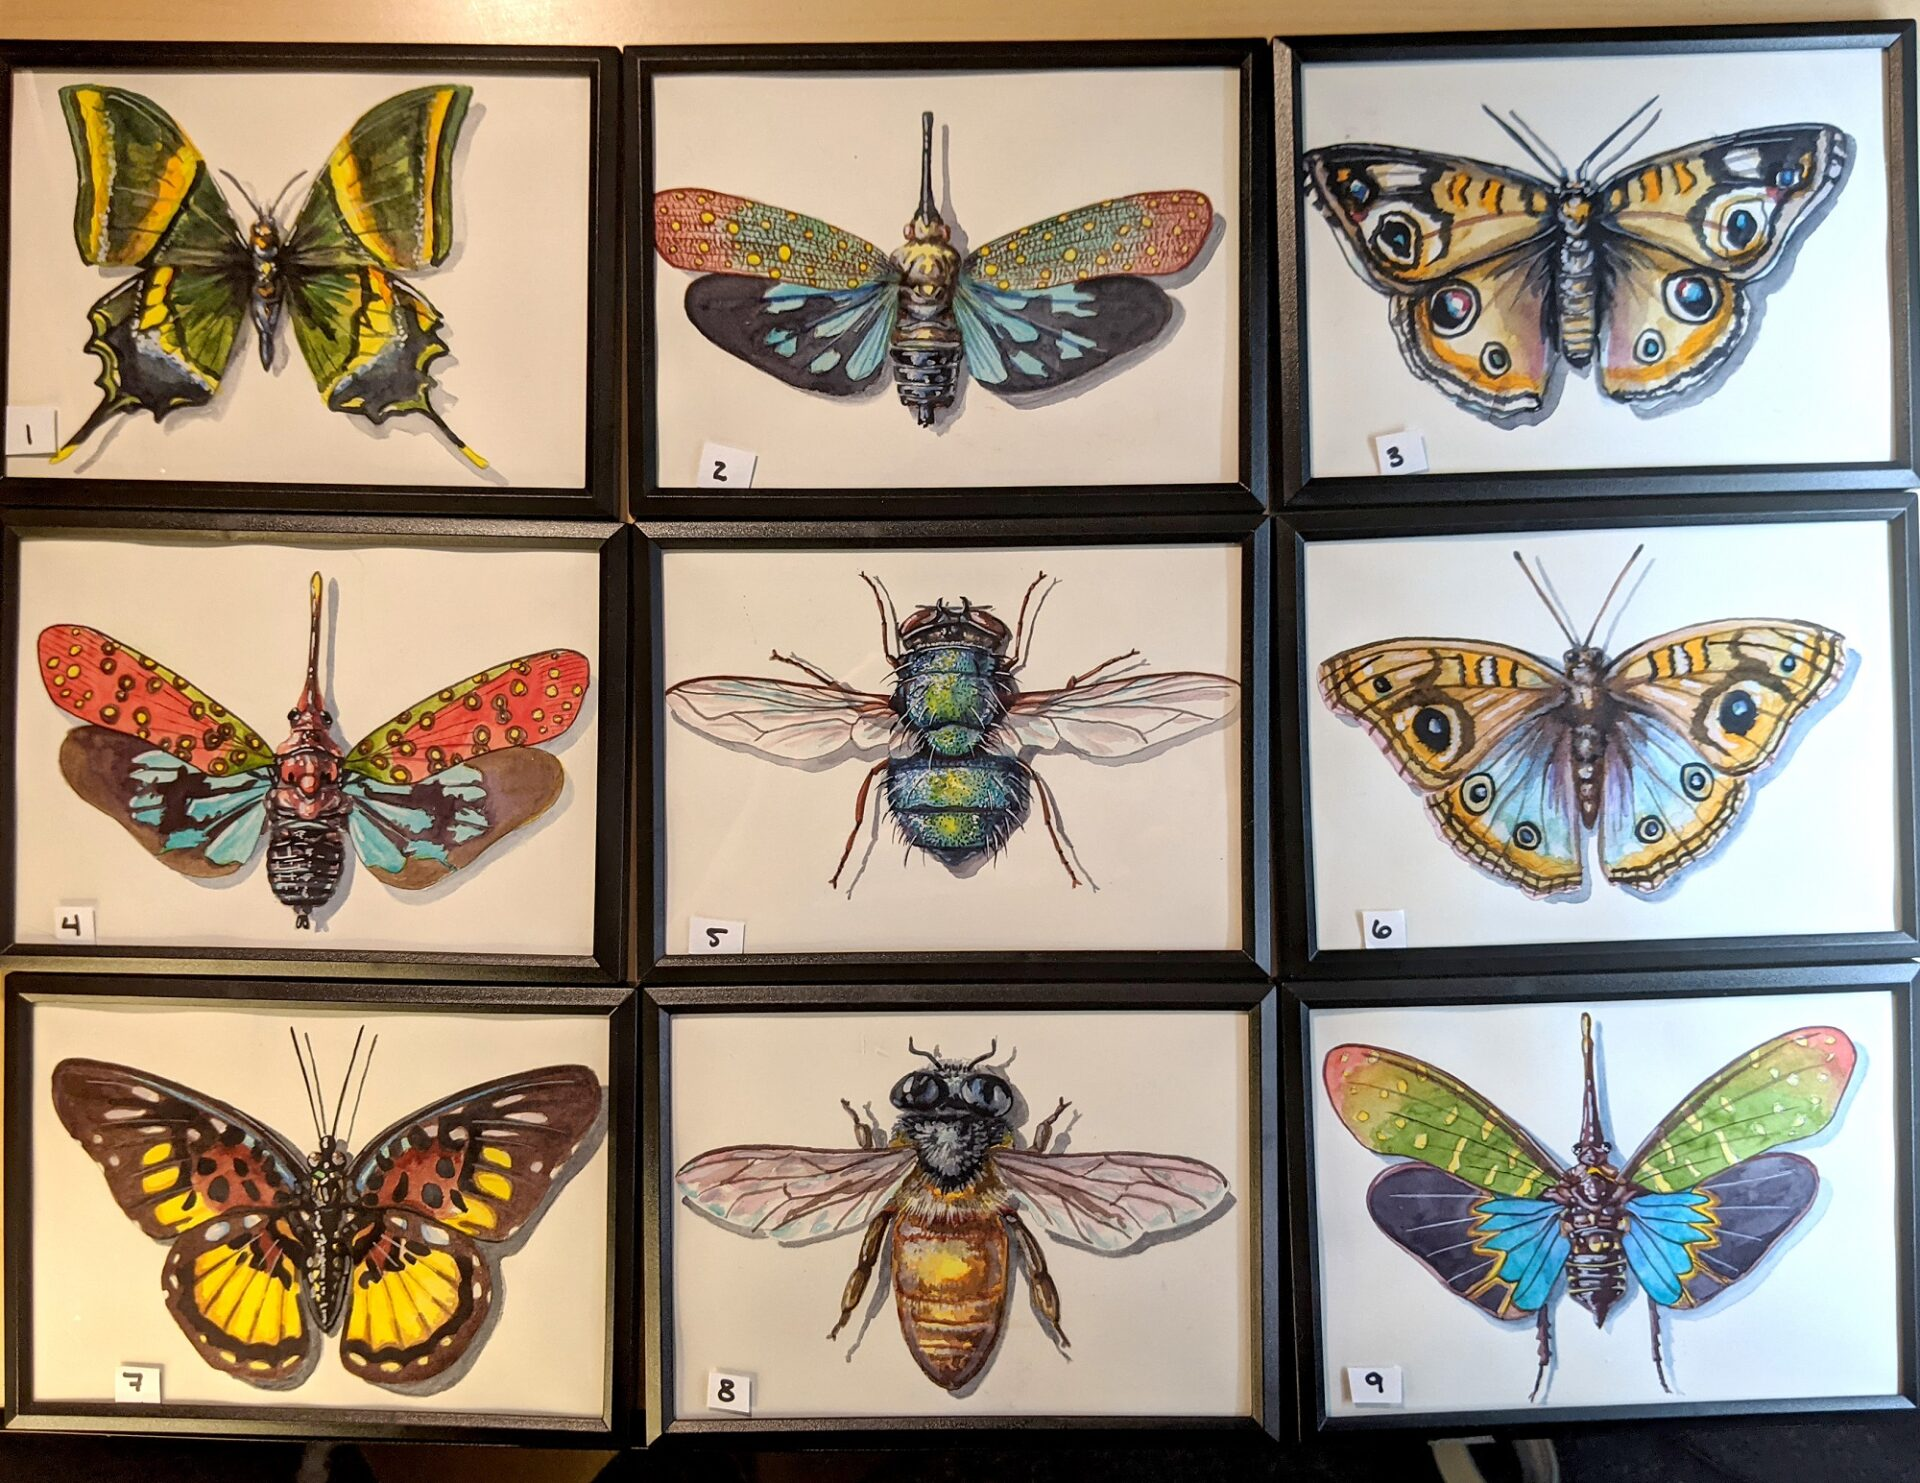 Small Insects 1 – 9 By Martha Iserman (Petals And Wings Exhibition)